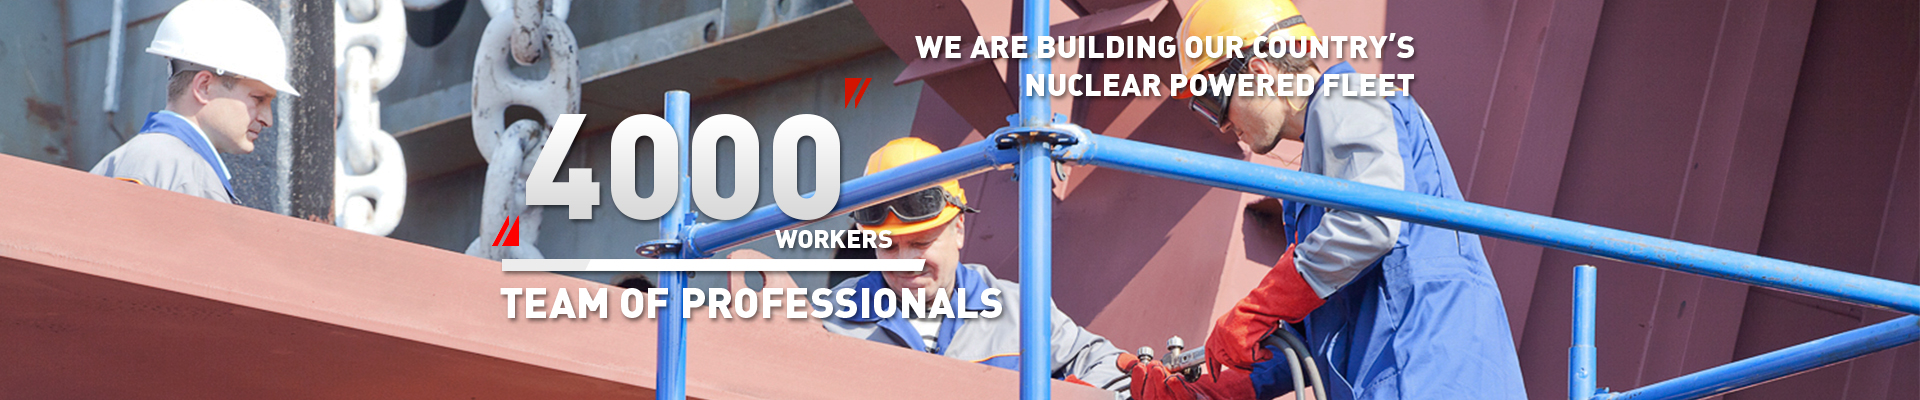 4000 workers team of professionals